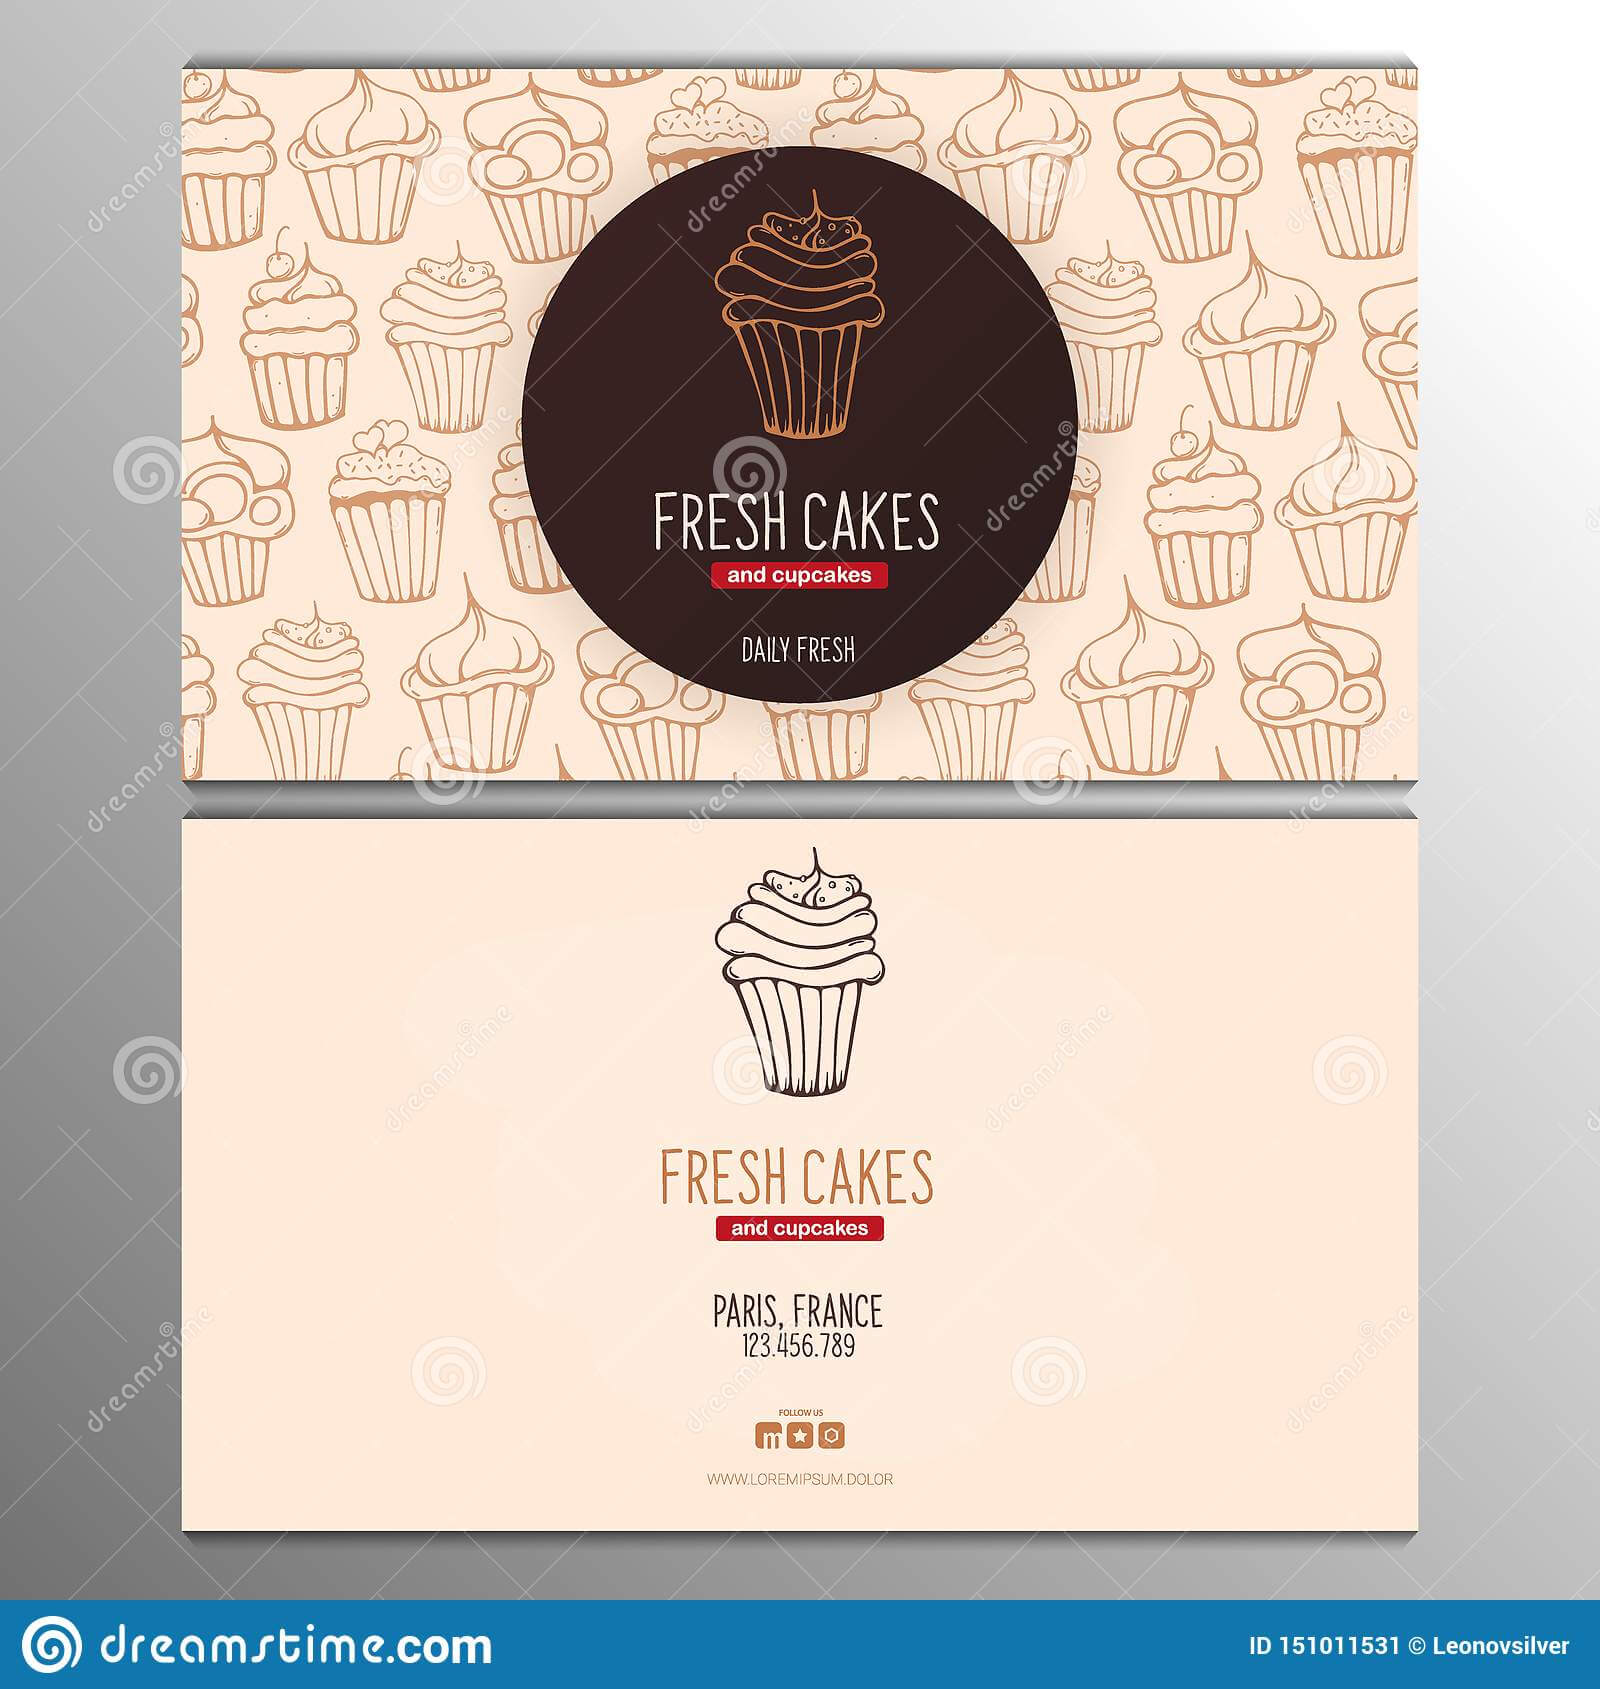 Cupcake Or Cake Business Card Template For Bakery Or Pastry Pertaining To Cake Business Cards Templates Free